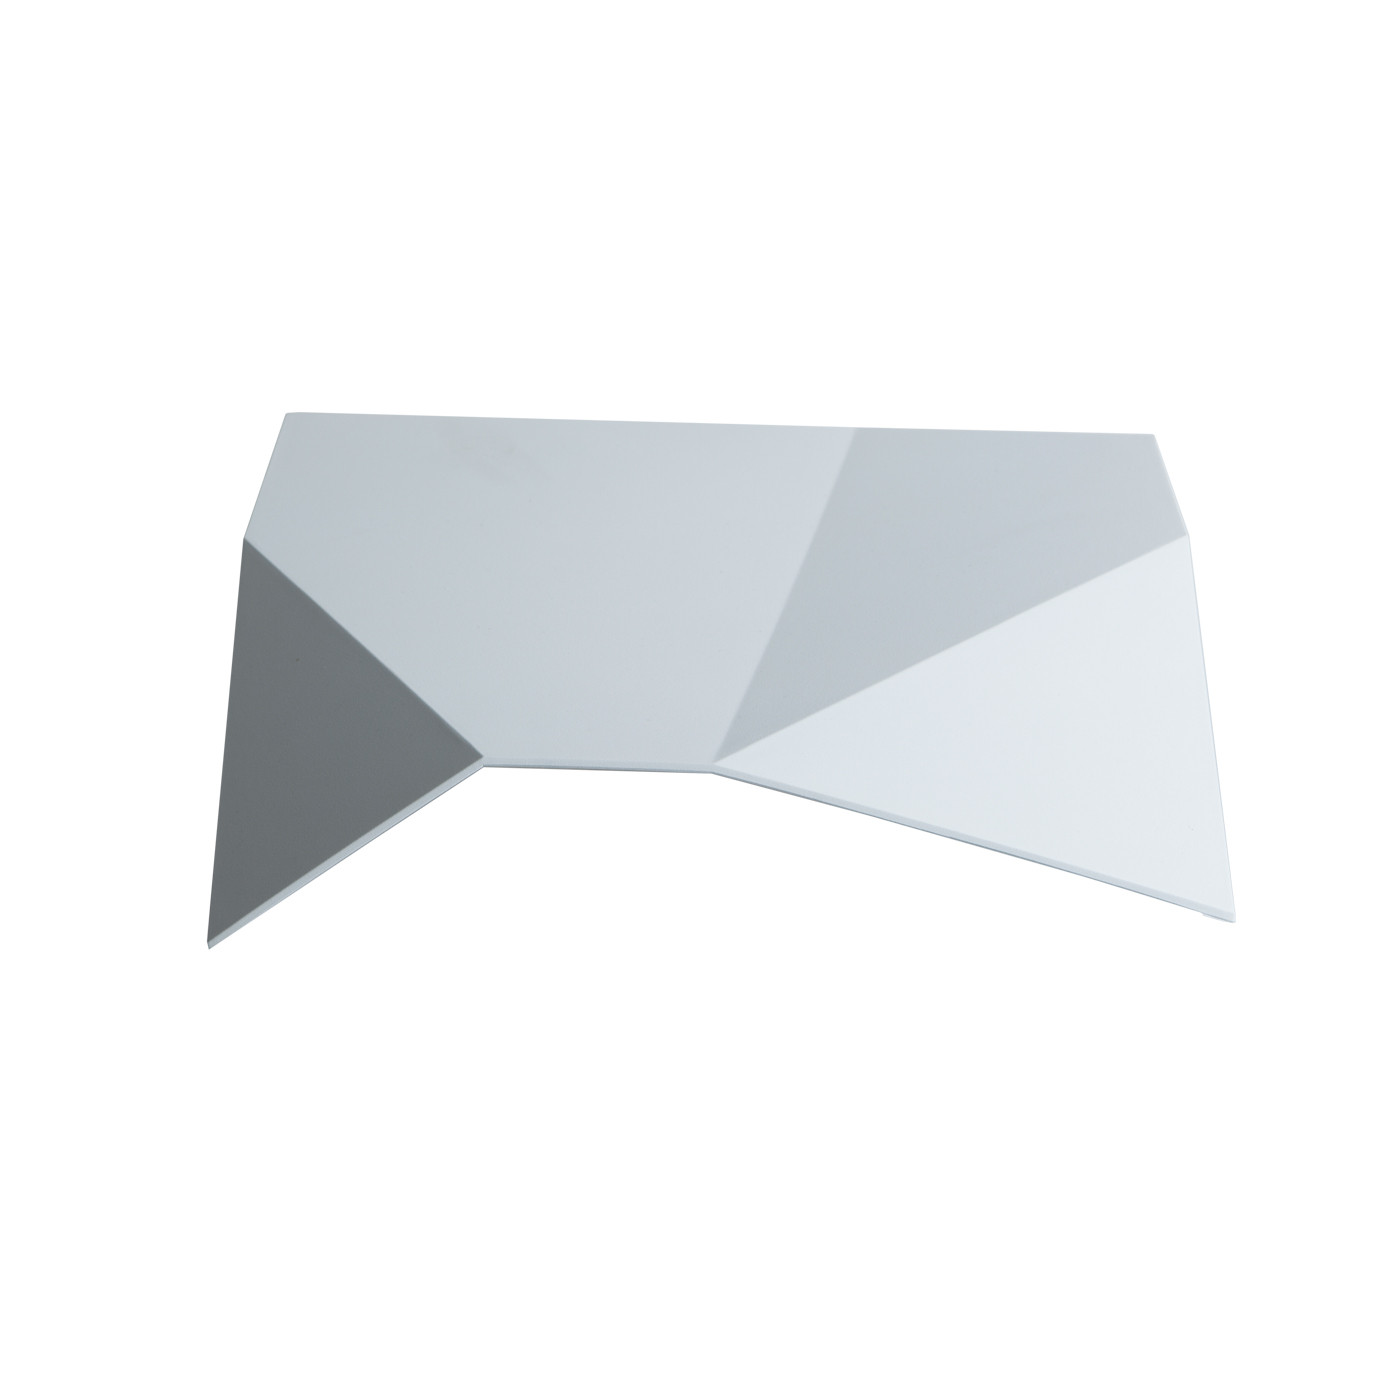 Vibia Origami 4504 replacement front panel